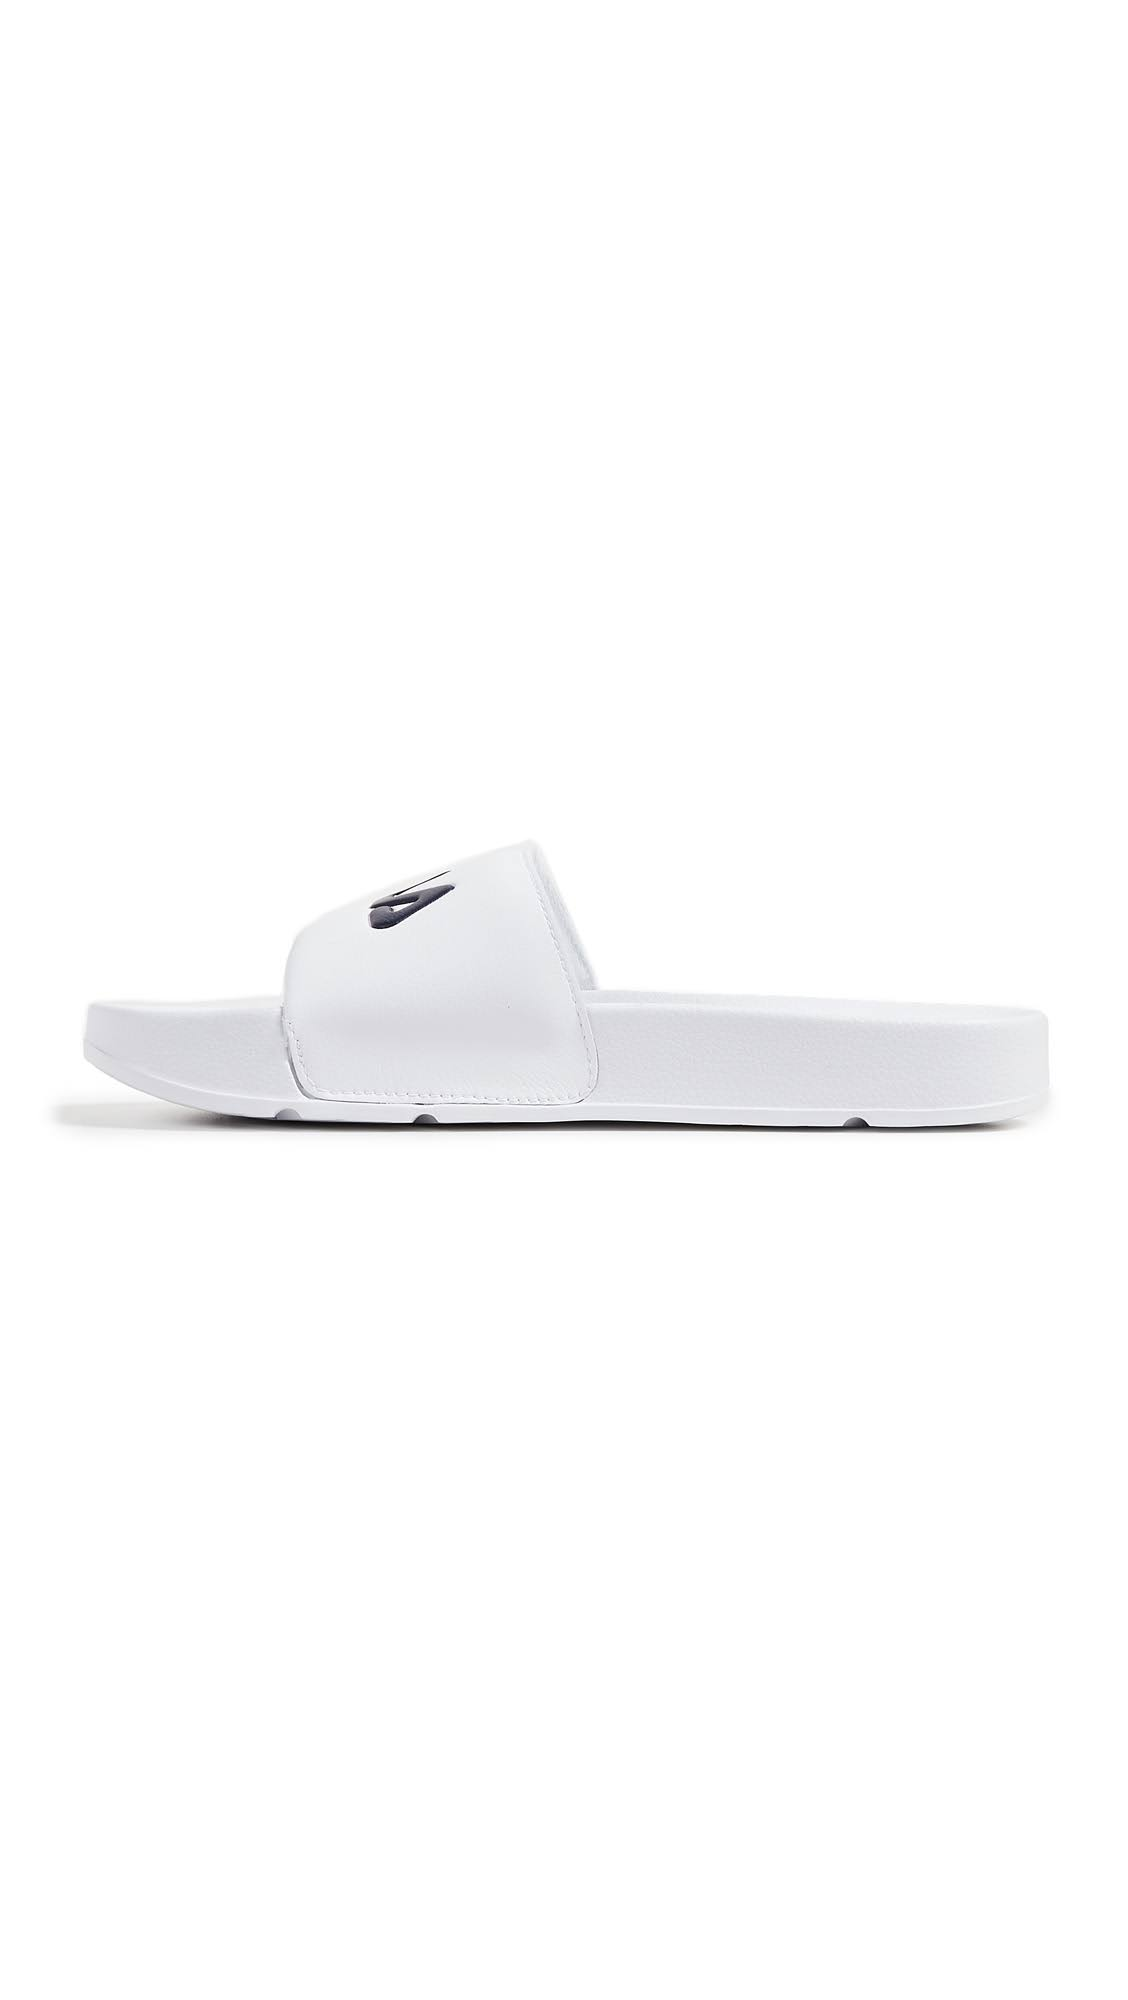 13 Sandals Drifter White Slide Fila IqXwO6